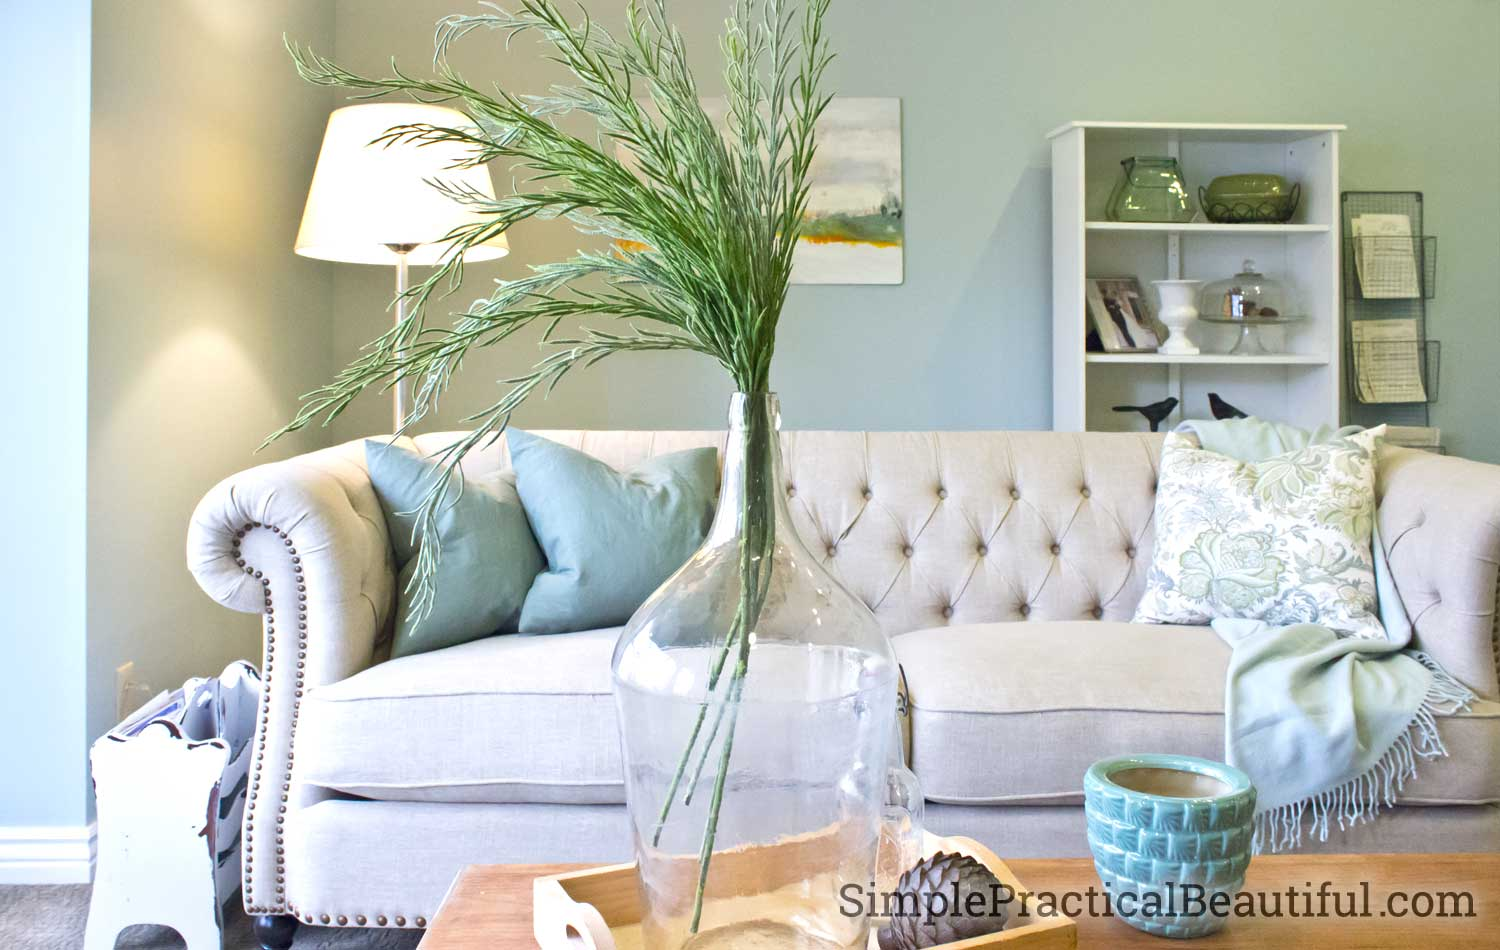 A Design Makeover - Simple Practical Beautiful